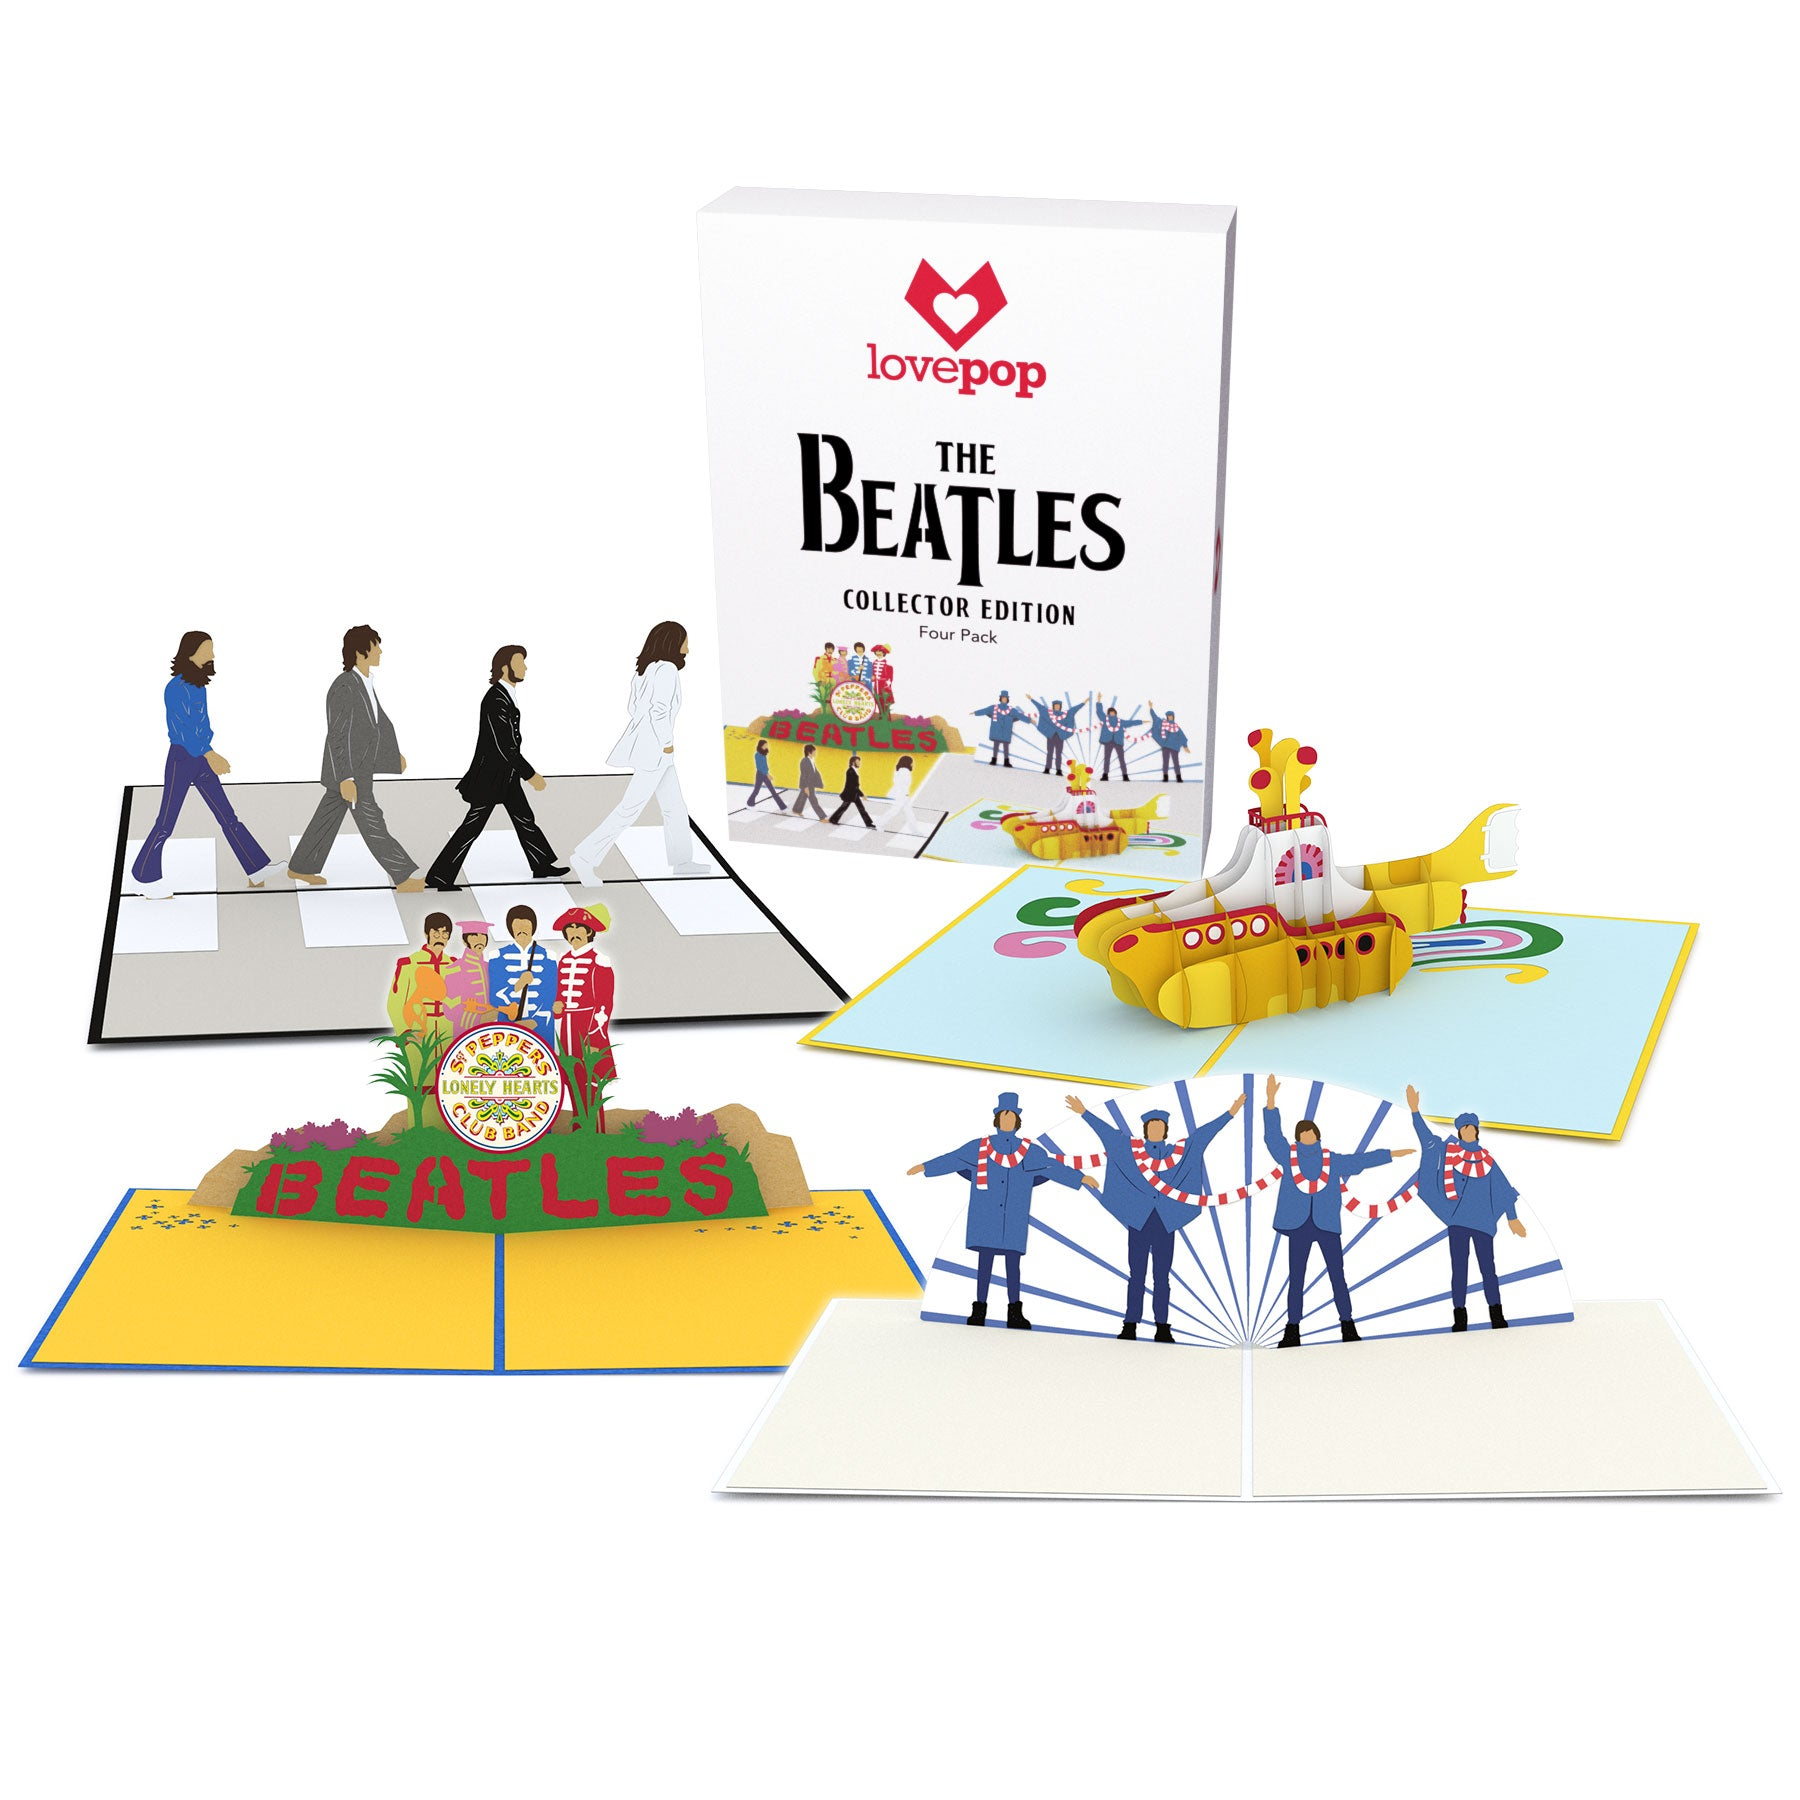 The beatles lovepop the beatles collector edition box set m4hsunfo